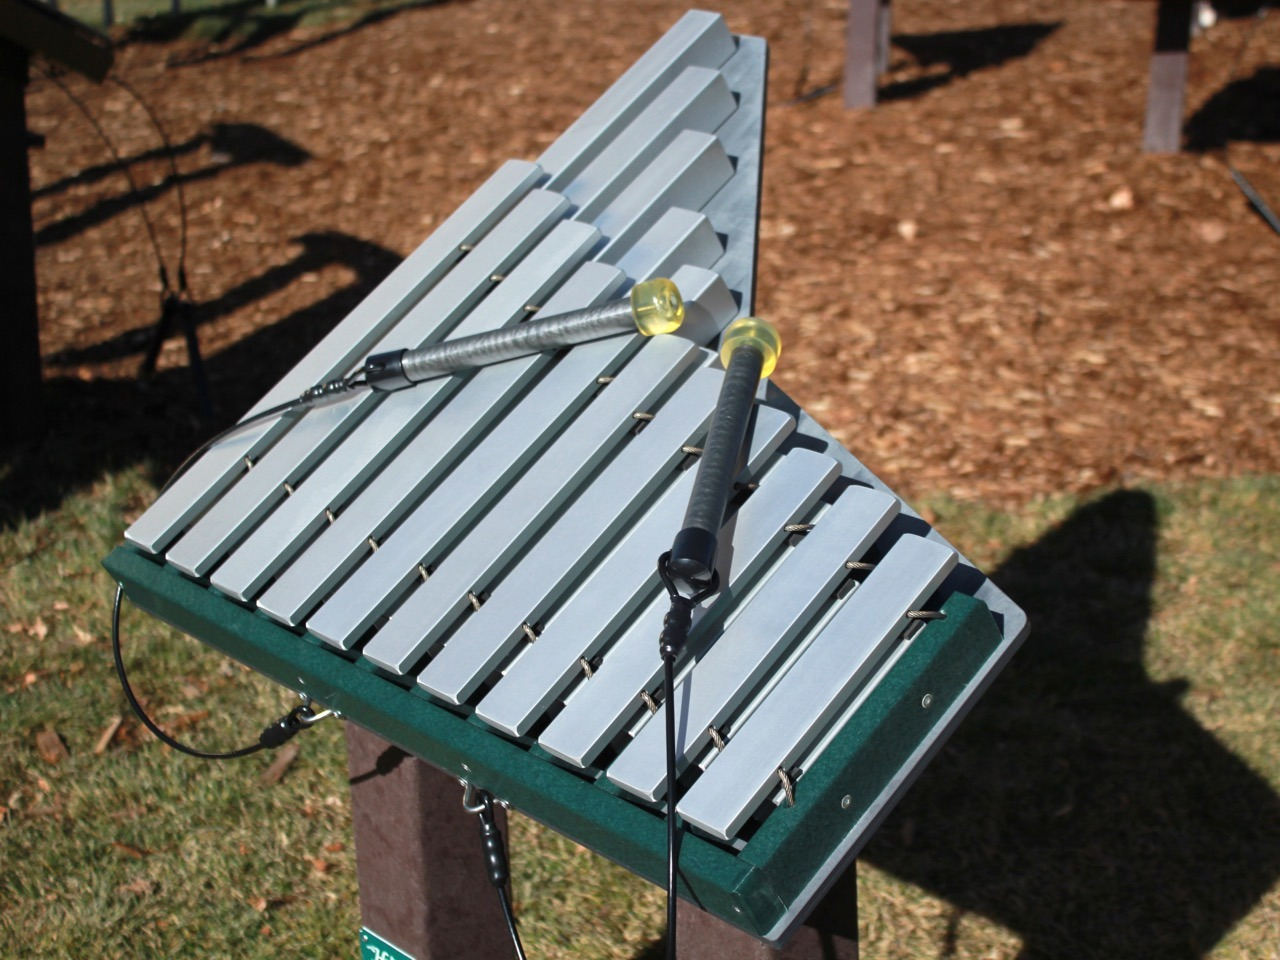 Merry Outdoor Playground Instrument 11 Note Matallophone